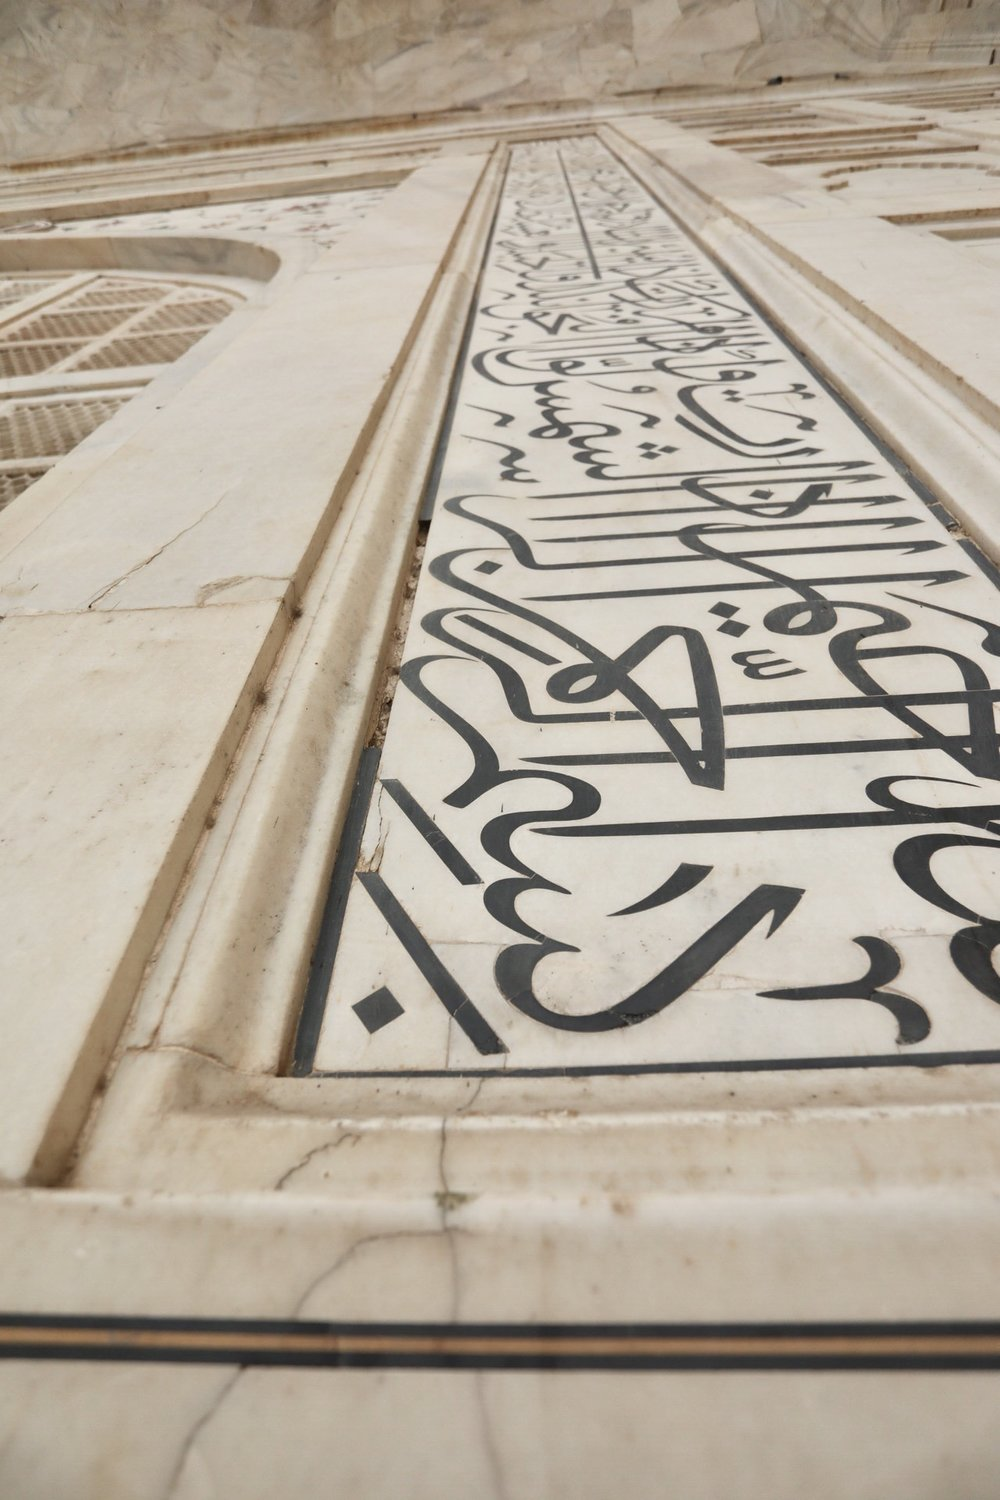 It's hard to believe but every single letter, like the pattern has been inlaid in the marble.